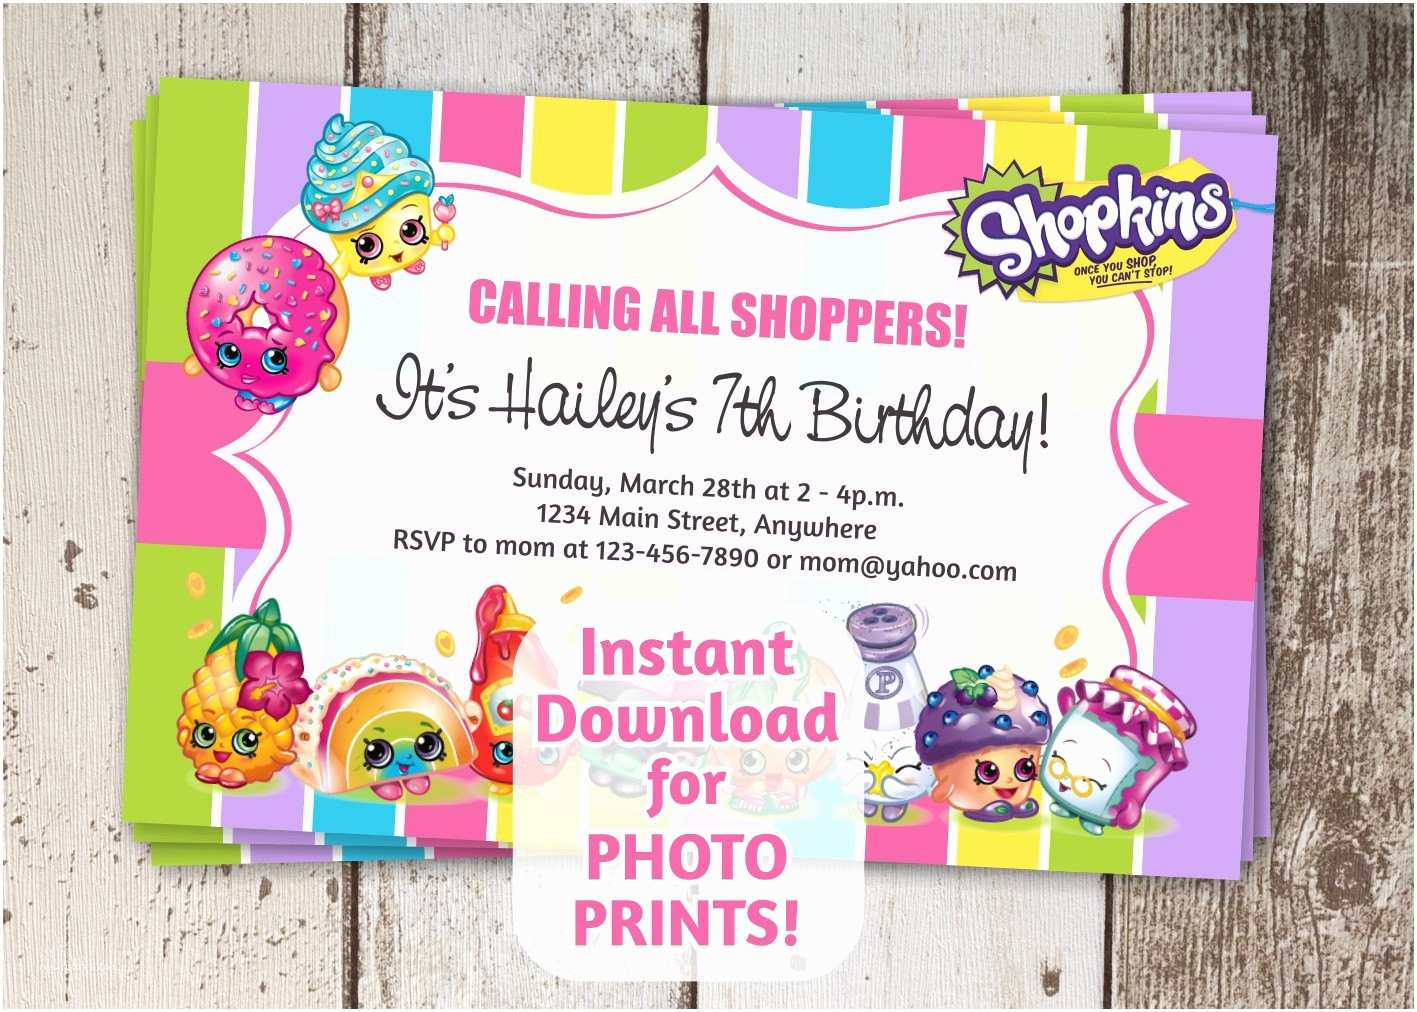 Shopkins Birthday Party Invitations Shopkins Invitation for Birthday Party 4x6 by